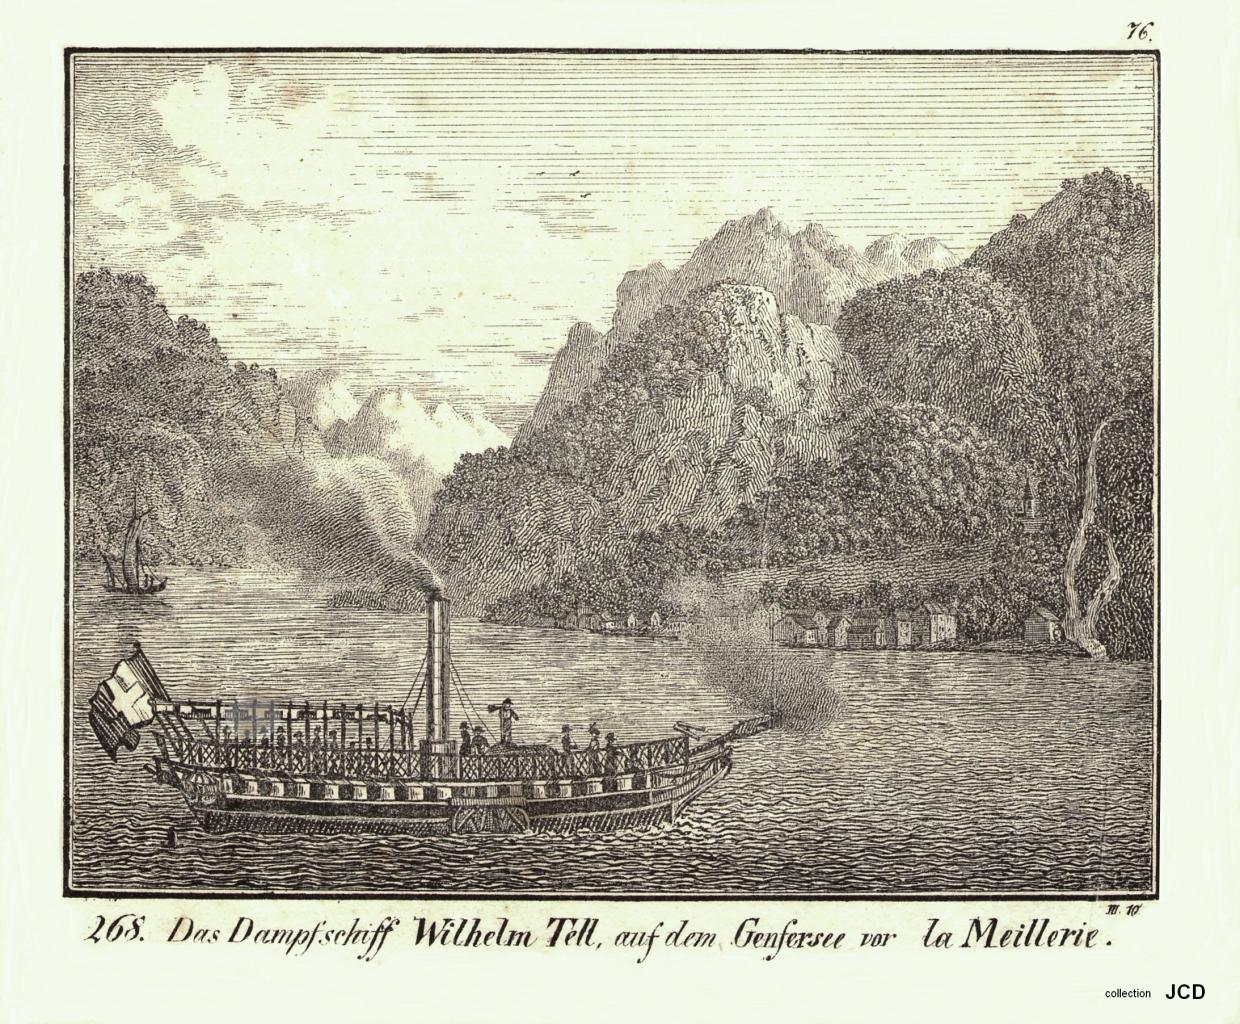 Meillerie Guillaume Tell 1823